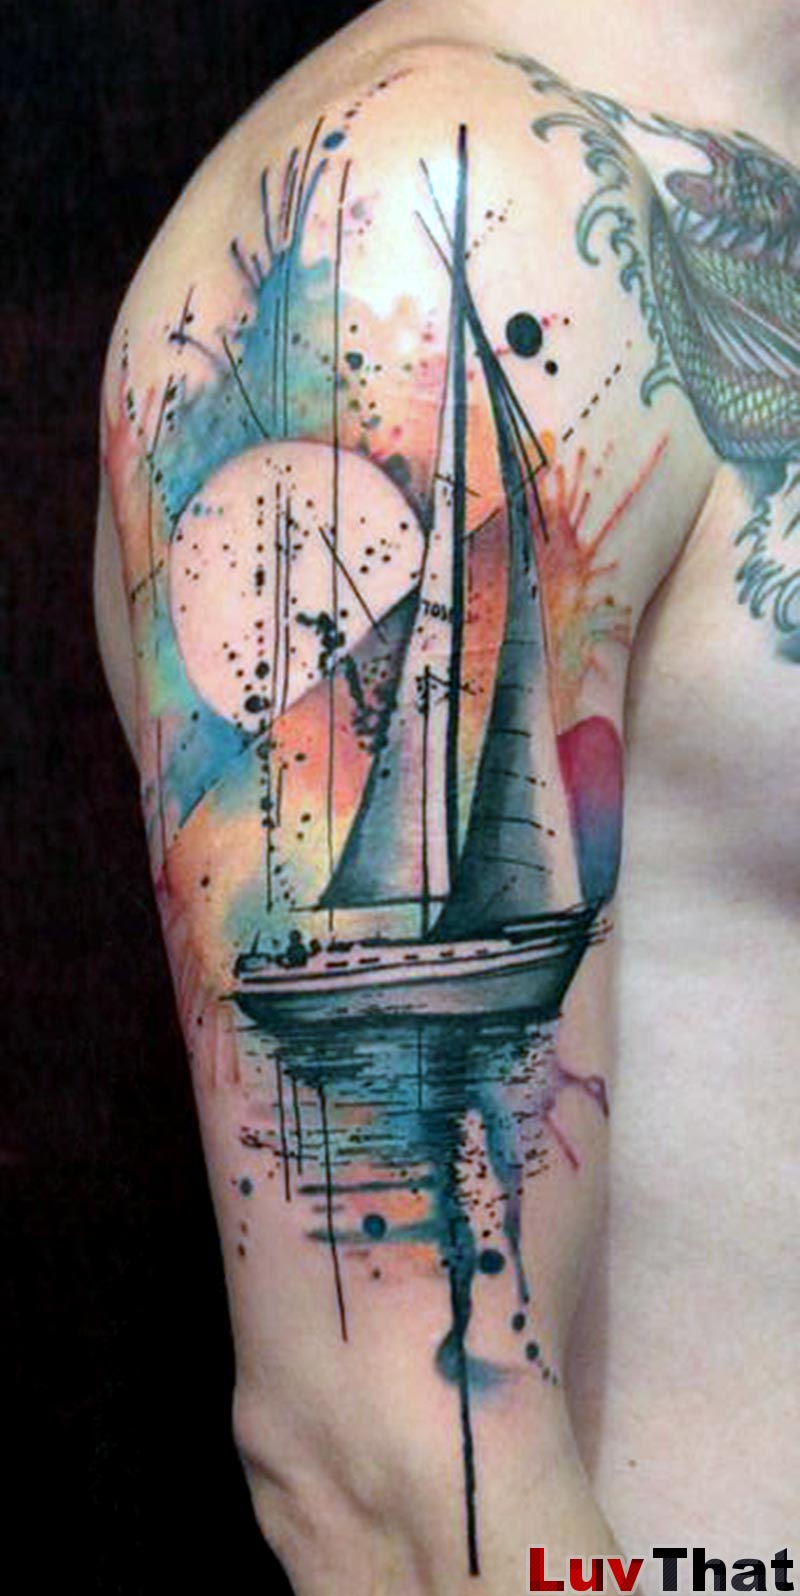 25 Amazing Watercolor Tattoos – Luvthat Ideas And Designs